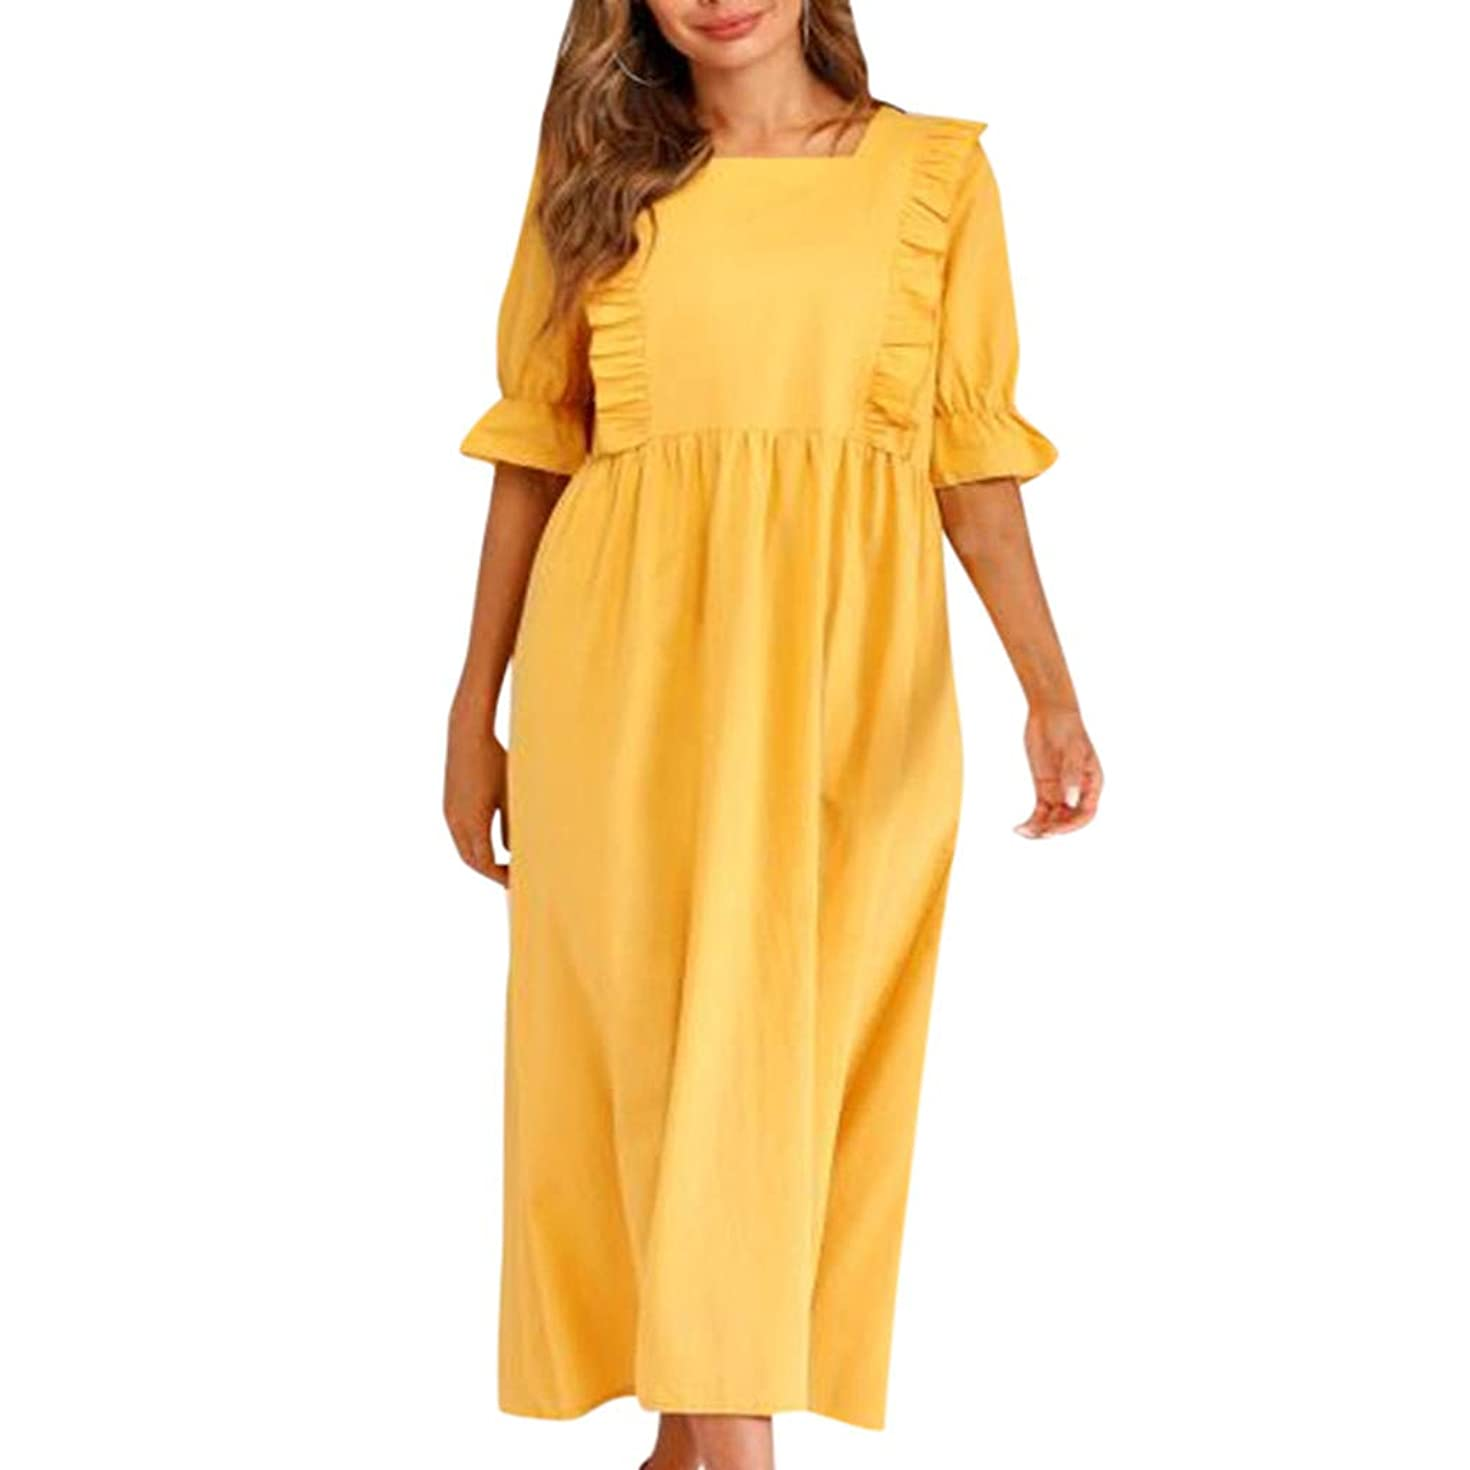 Women Cotton Linen Solid Color Half Sleeve Pleated Casual Shrug Ruffle Long Loose Plus Size Dress